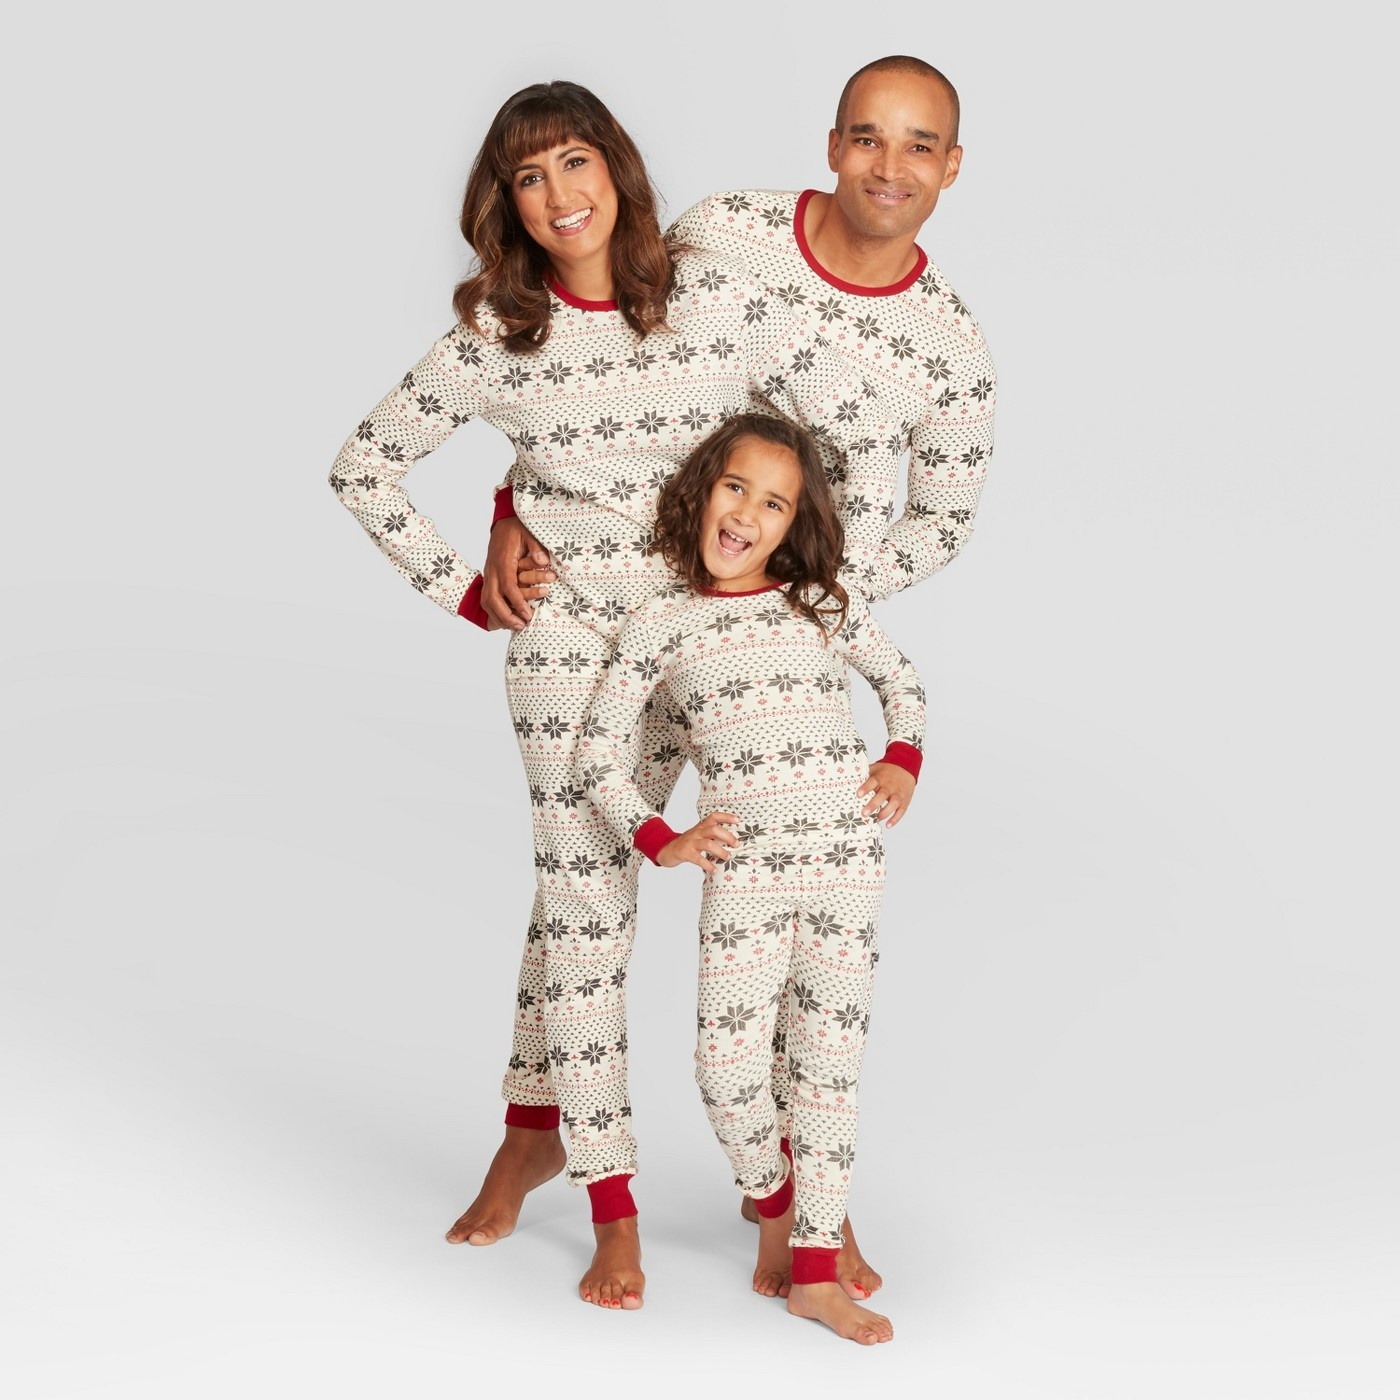 88a1642002 Target s matching family Christmas 2018 PJ s just arrived—and you won t  know which to pick! - Motherly